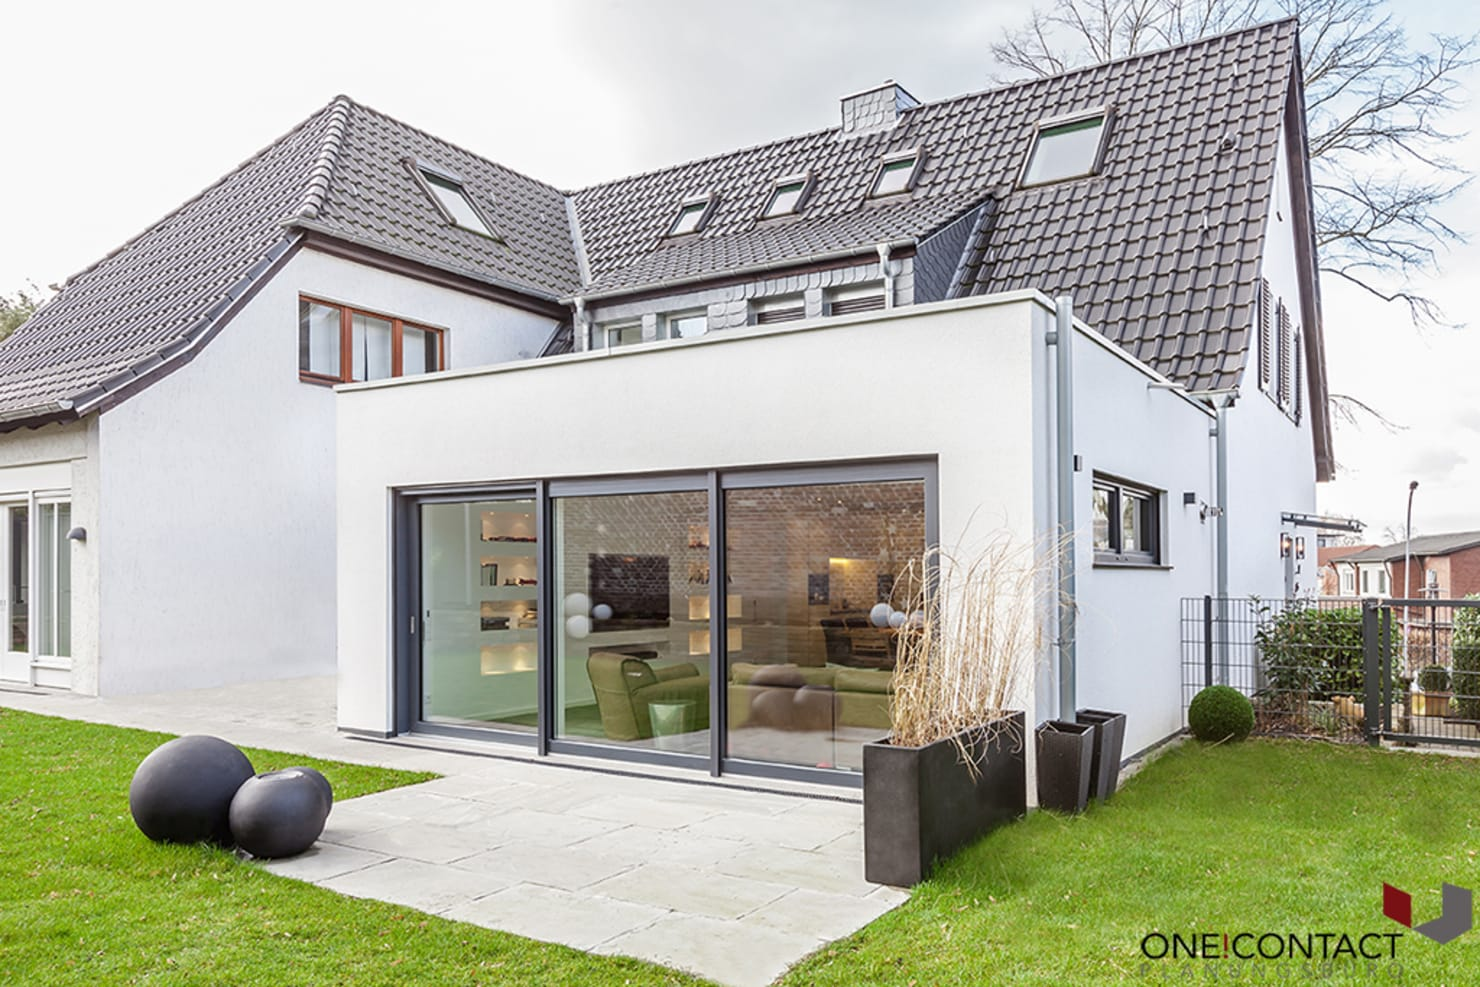 House update with 60s and innovative design